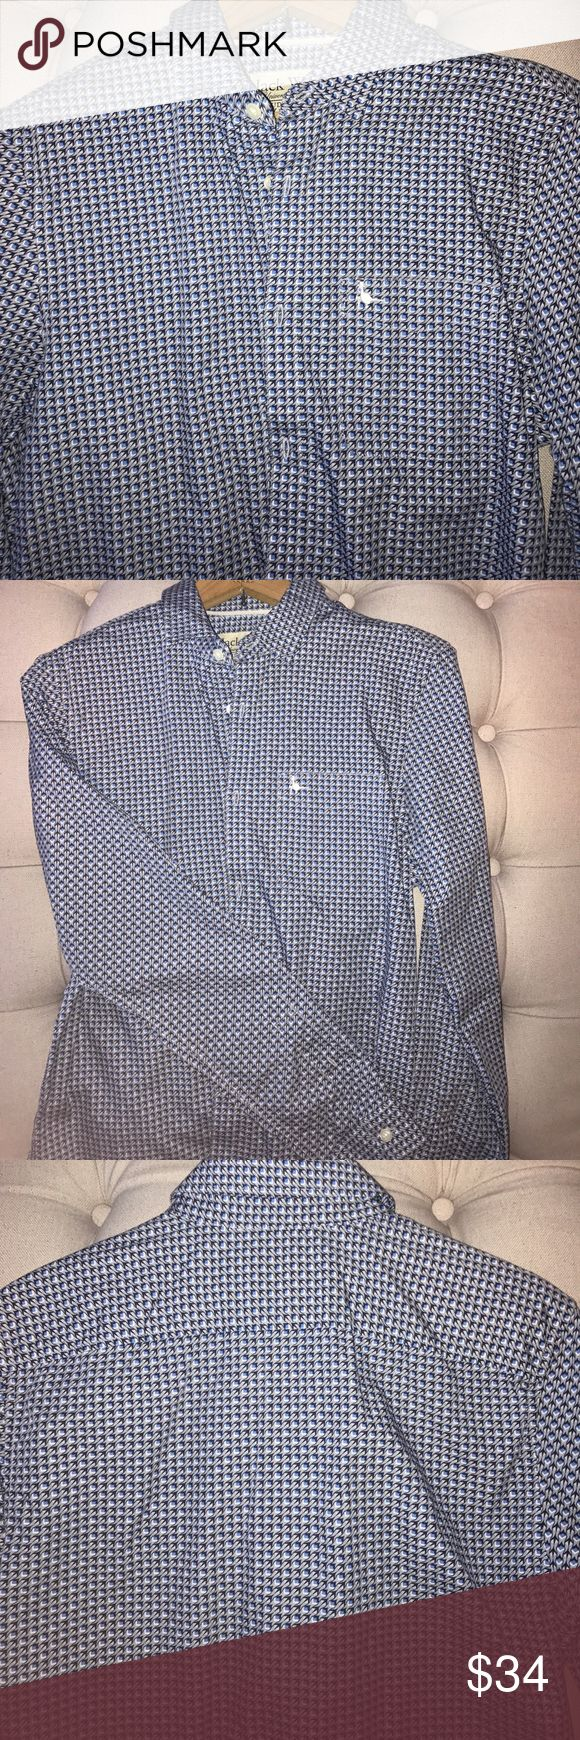 Unique Jack Wills Slim Fit button down Worn once, amazing quality. Can be dressed up with a blazer, or dressed down with some jeans or shorts! Love the print, it's a mix of light gray, dark navy, light blue, and white. Jack Wills shirts run slimmer than most Jack Wills Shirts Casual Button Down Shirts